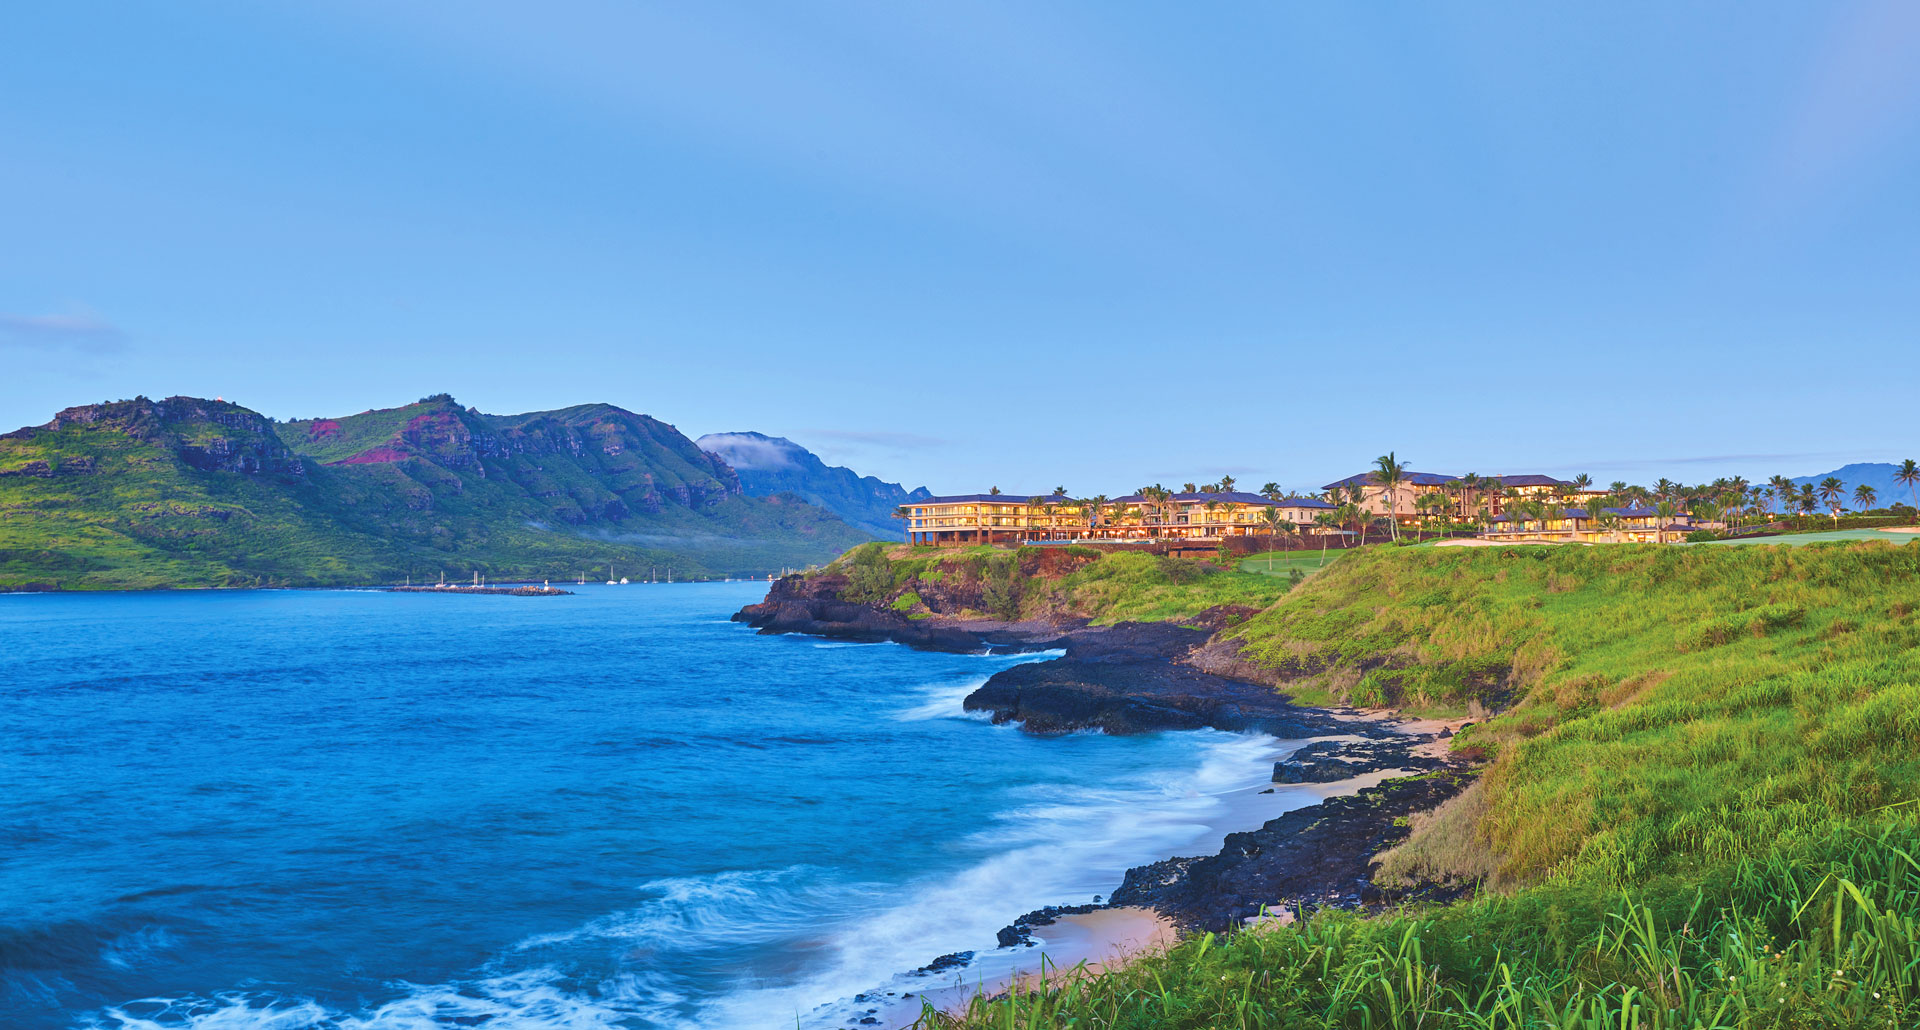 Timbers Kauai Ocean Club & Residences - boutique hotel in the Island of Kauai